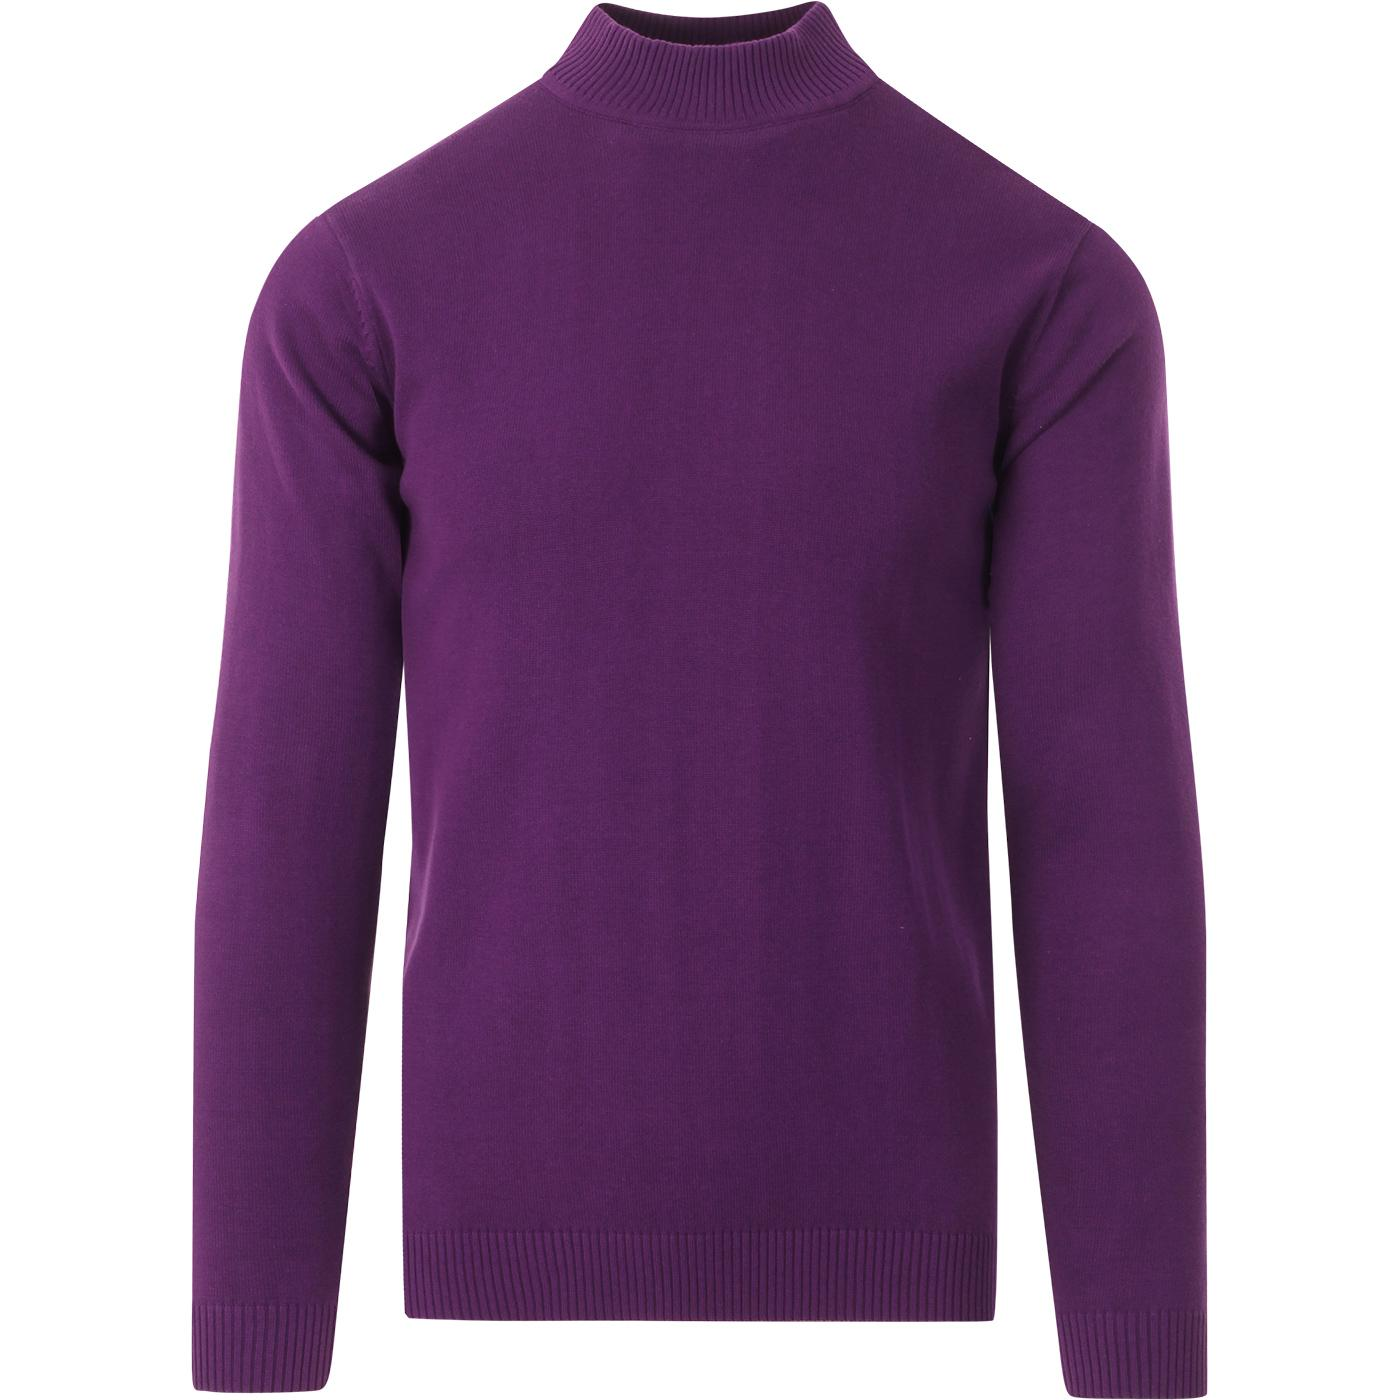 madcap england mens eastwood slim fit turtleneck knitted top imperial purple